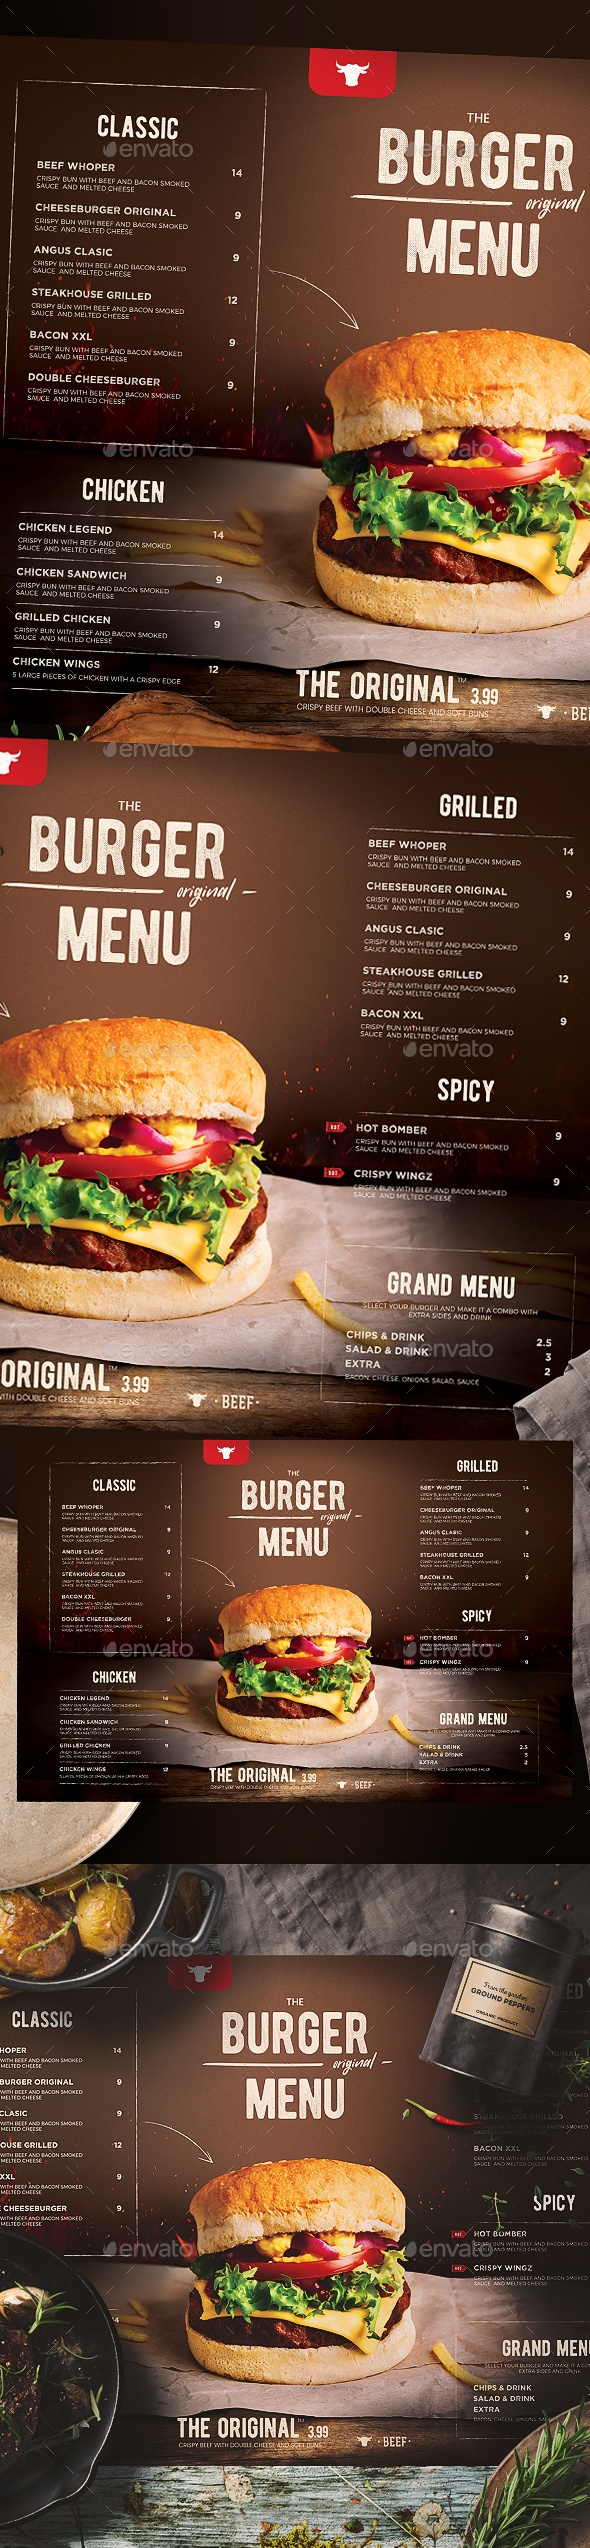 Burger Menu - Food Menus Print Templates